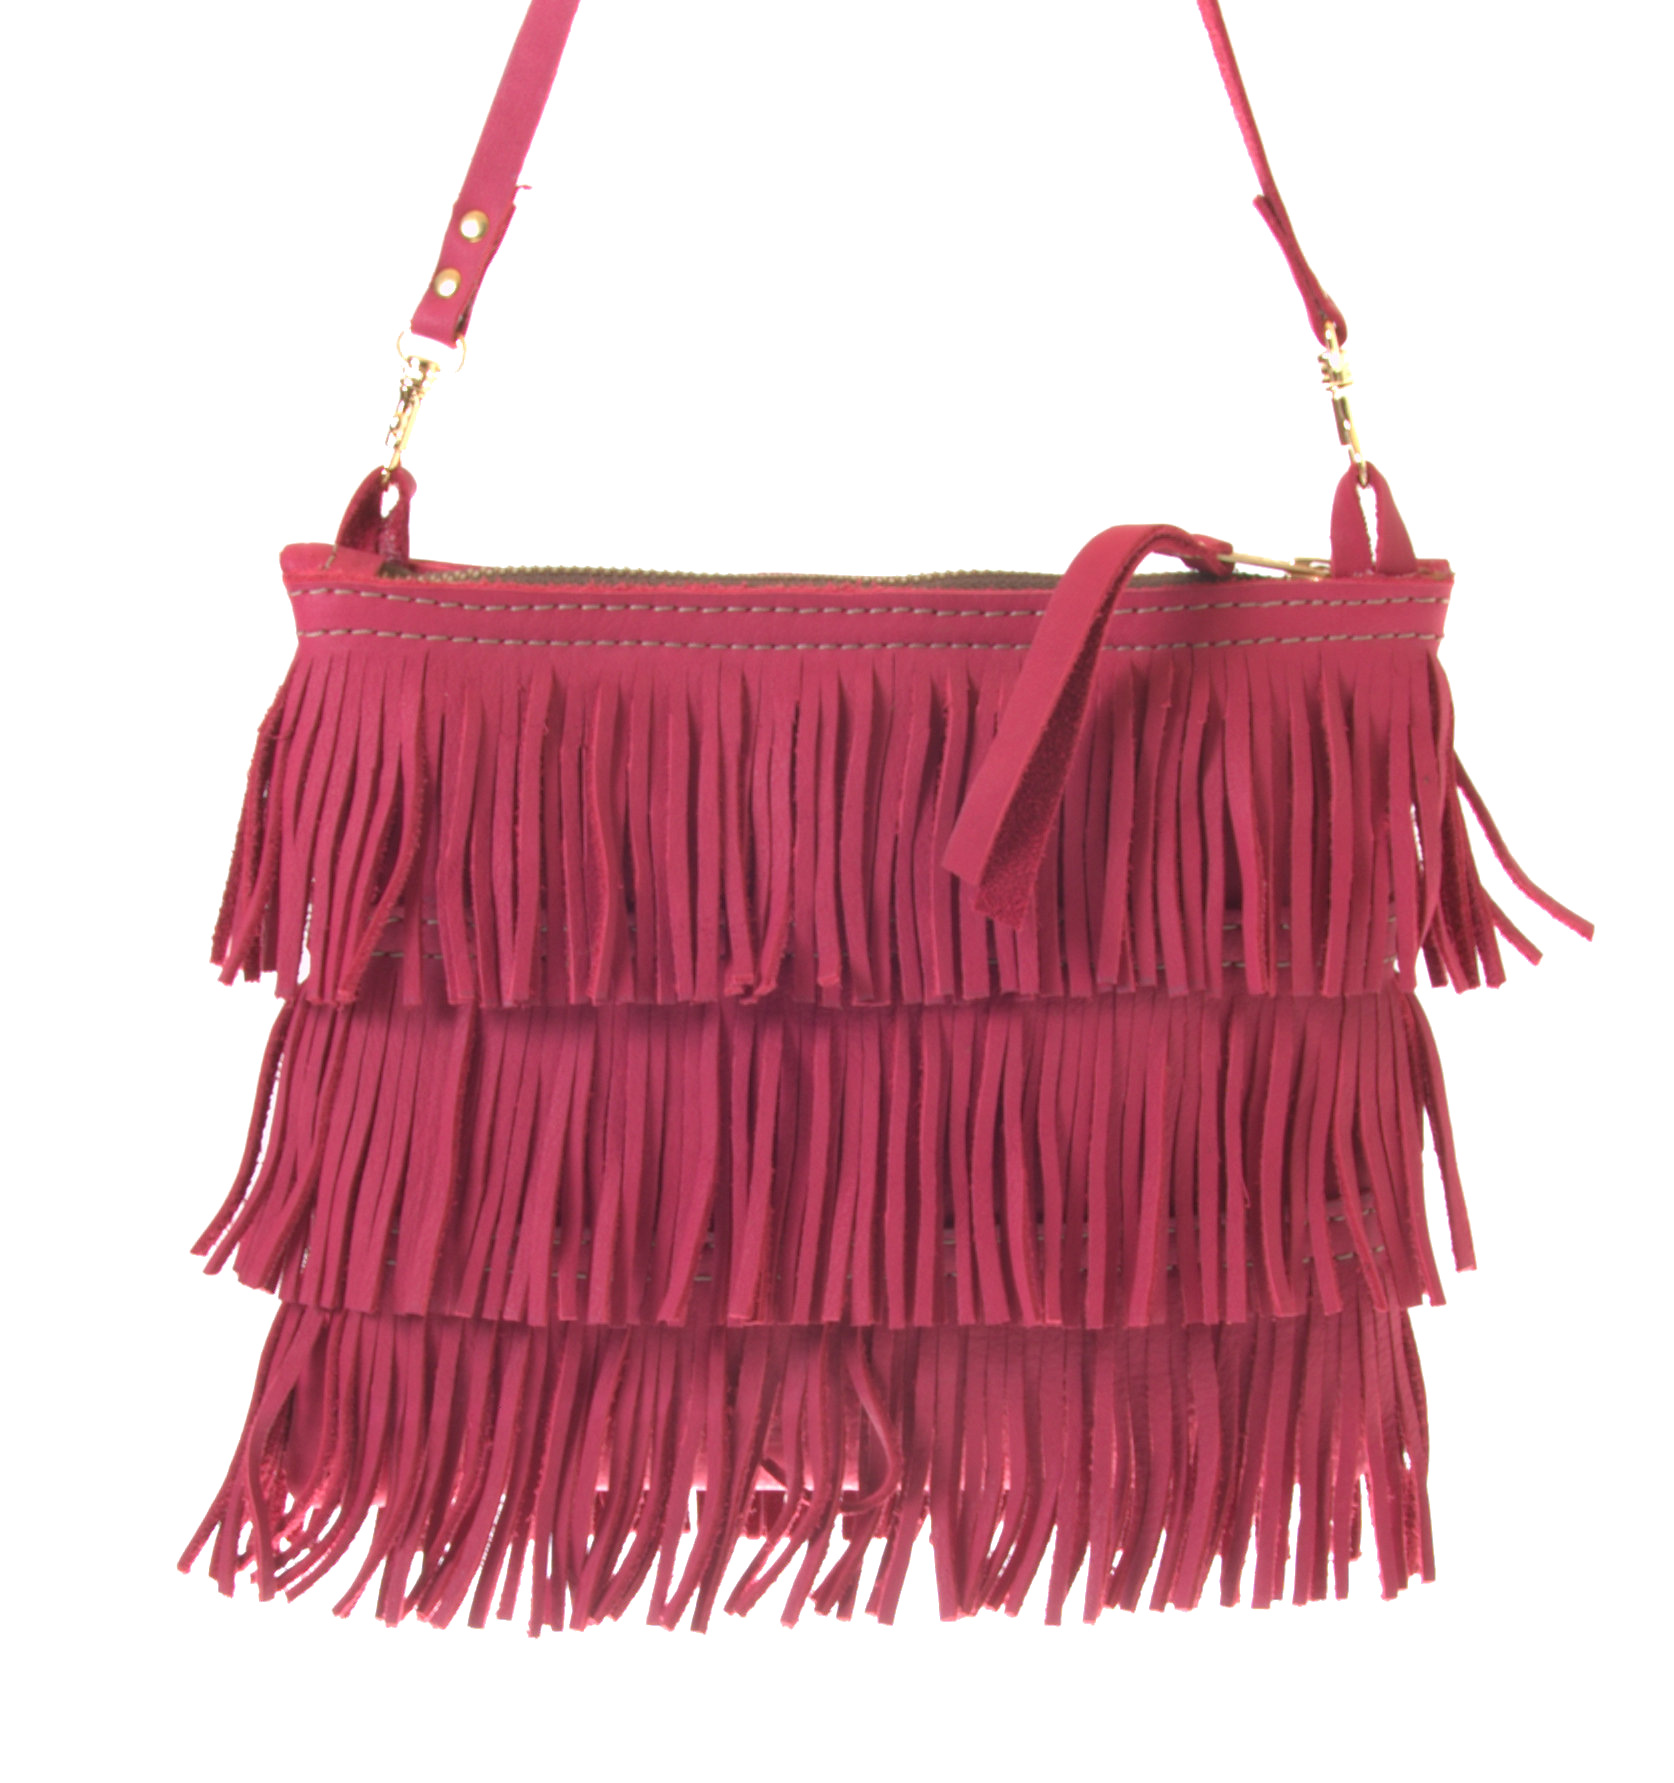 Small Fringe - Small shoulder bag - Jackal and Hide